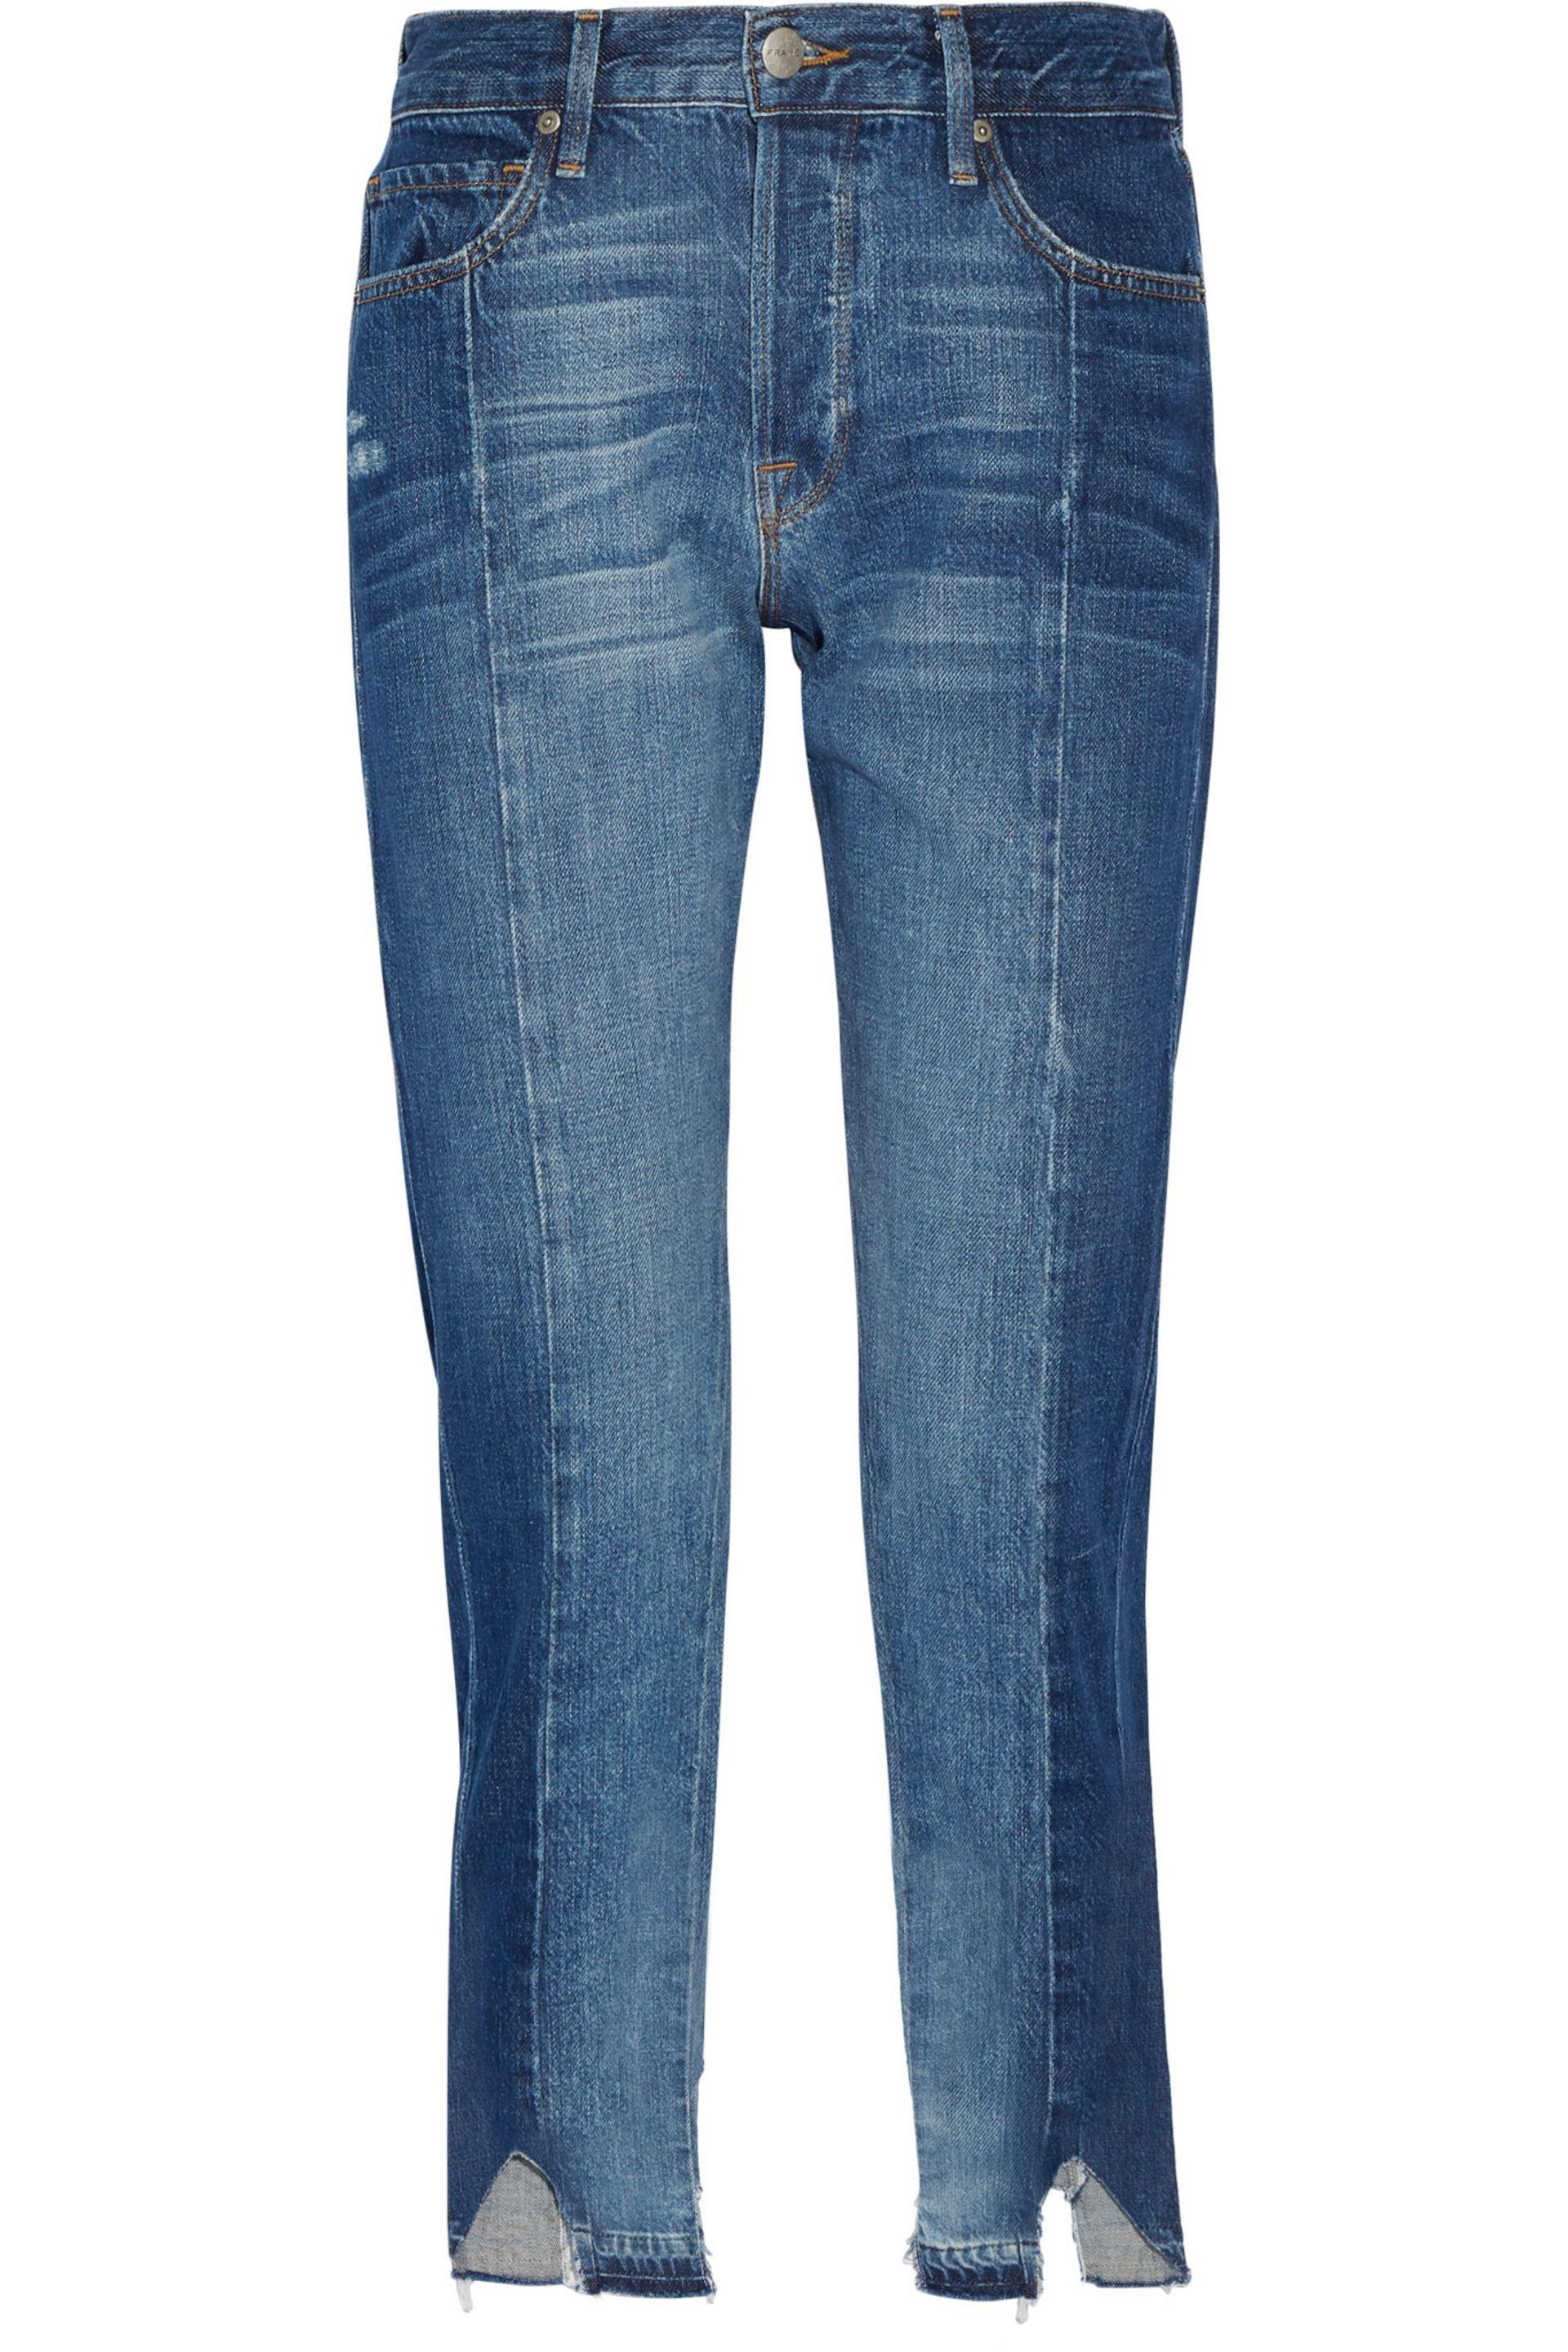 FRAME. Women's Blue Le Original Mix Boyfriend Jeans